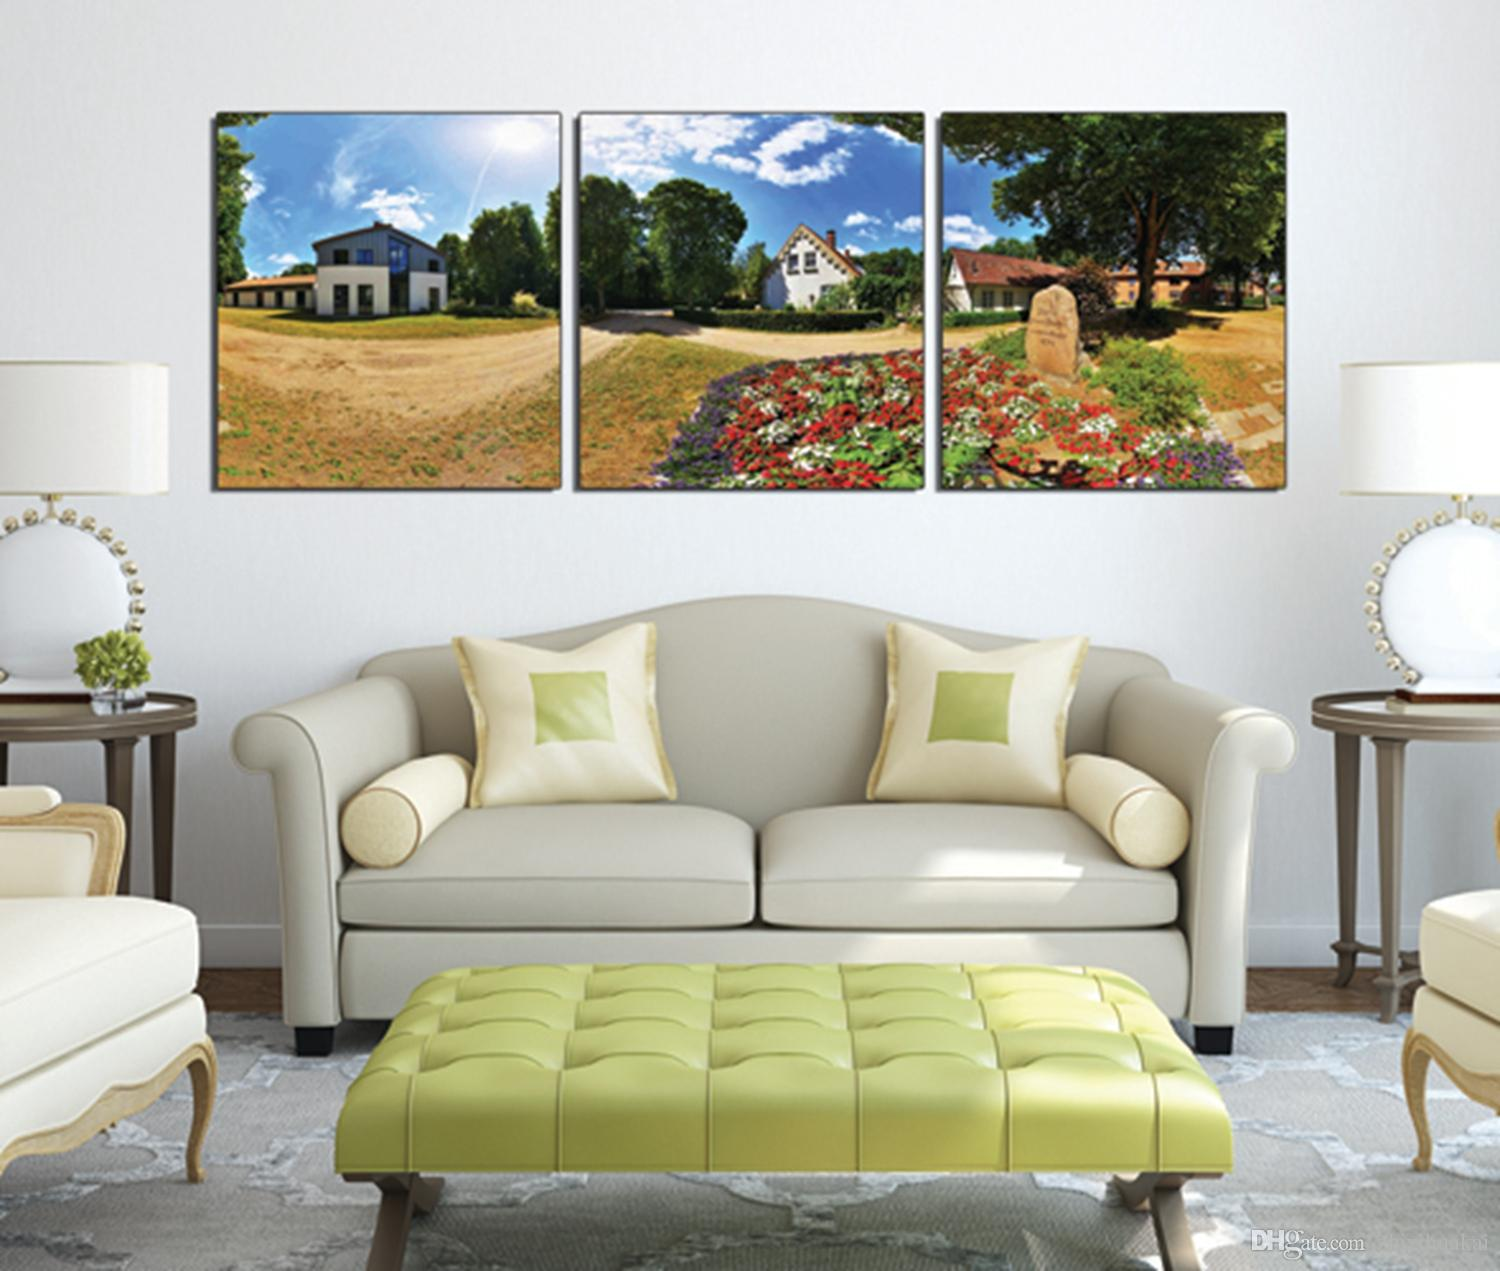 Wall Painting Art Picture Paint on Canvas Prints Panoramic photos Small town scenery Wooden pier tree house fence